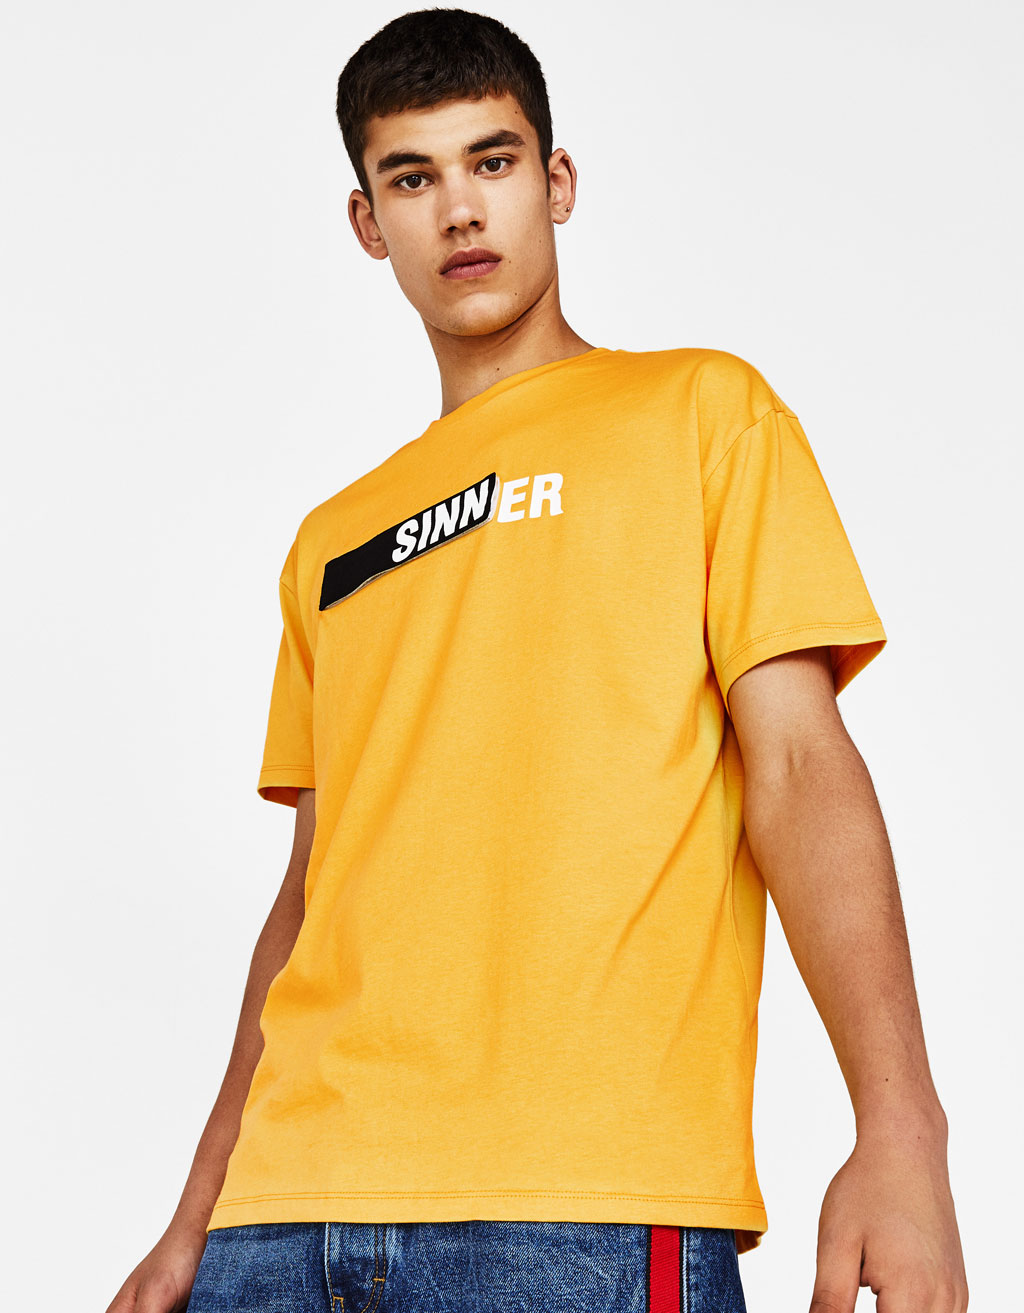 T-shirt with slogan strip